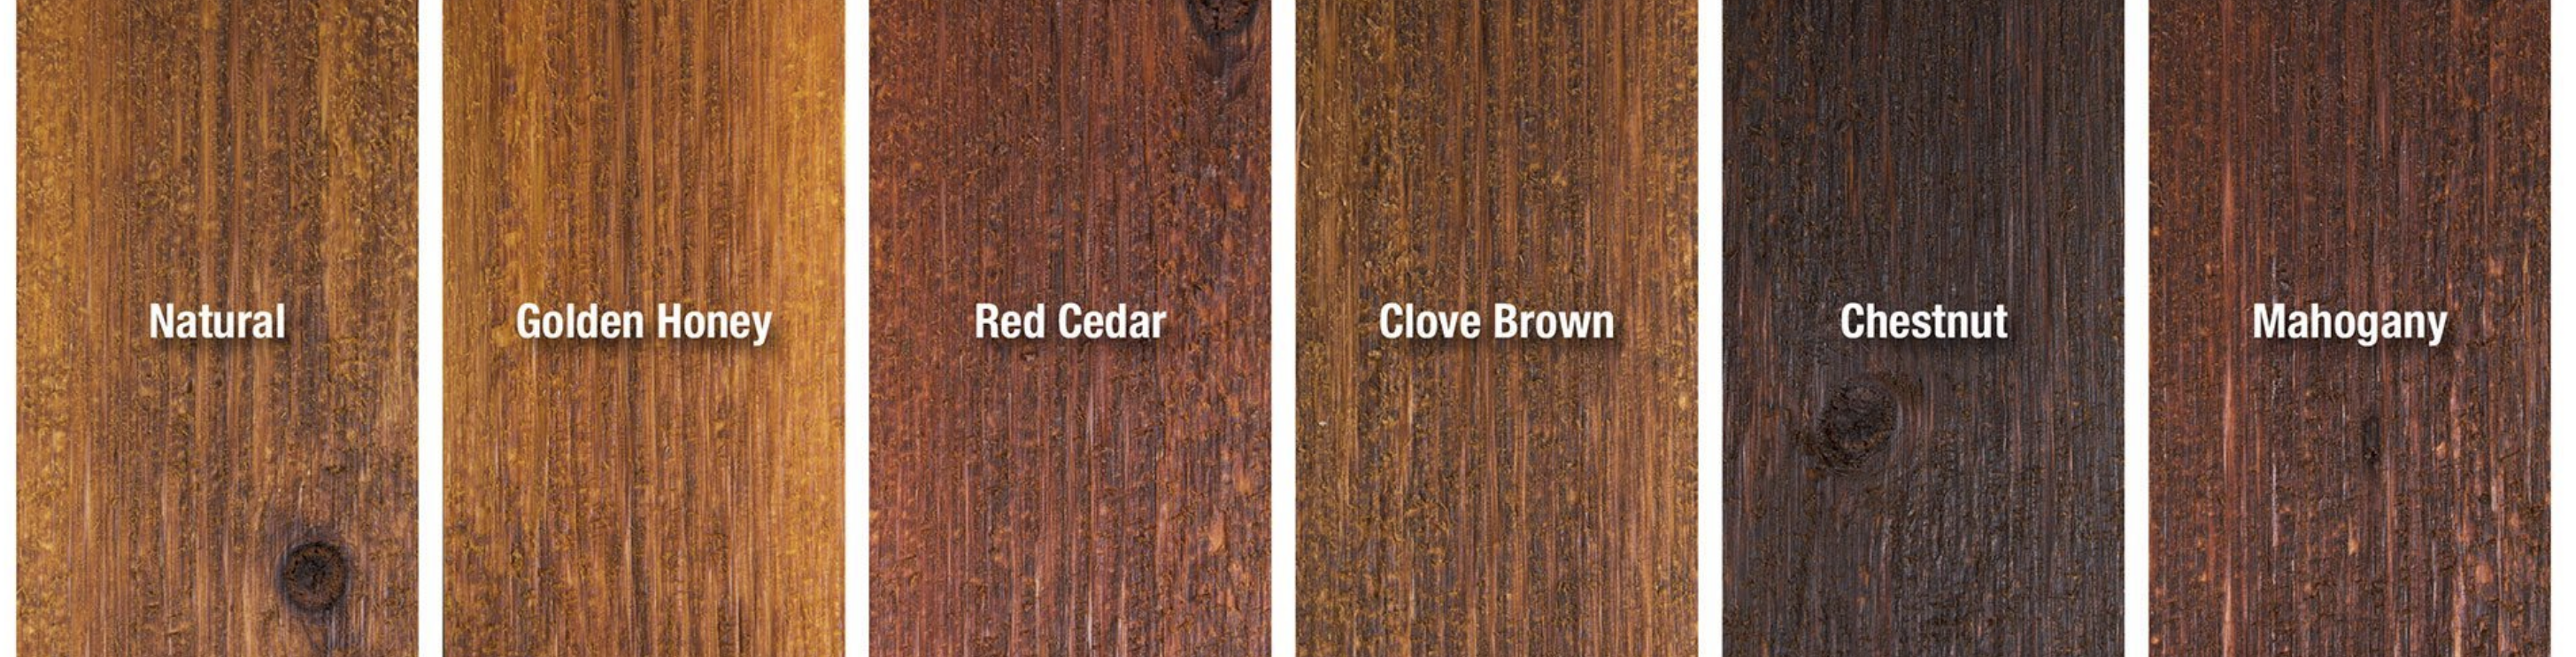 Match Just About Any Colour With Your Solid Wood Furniture